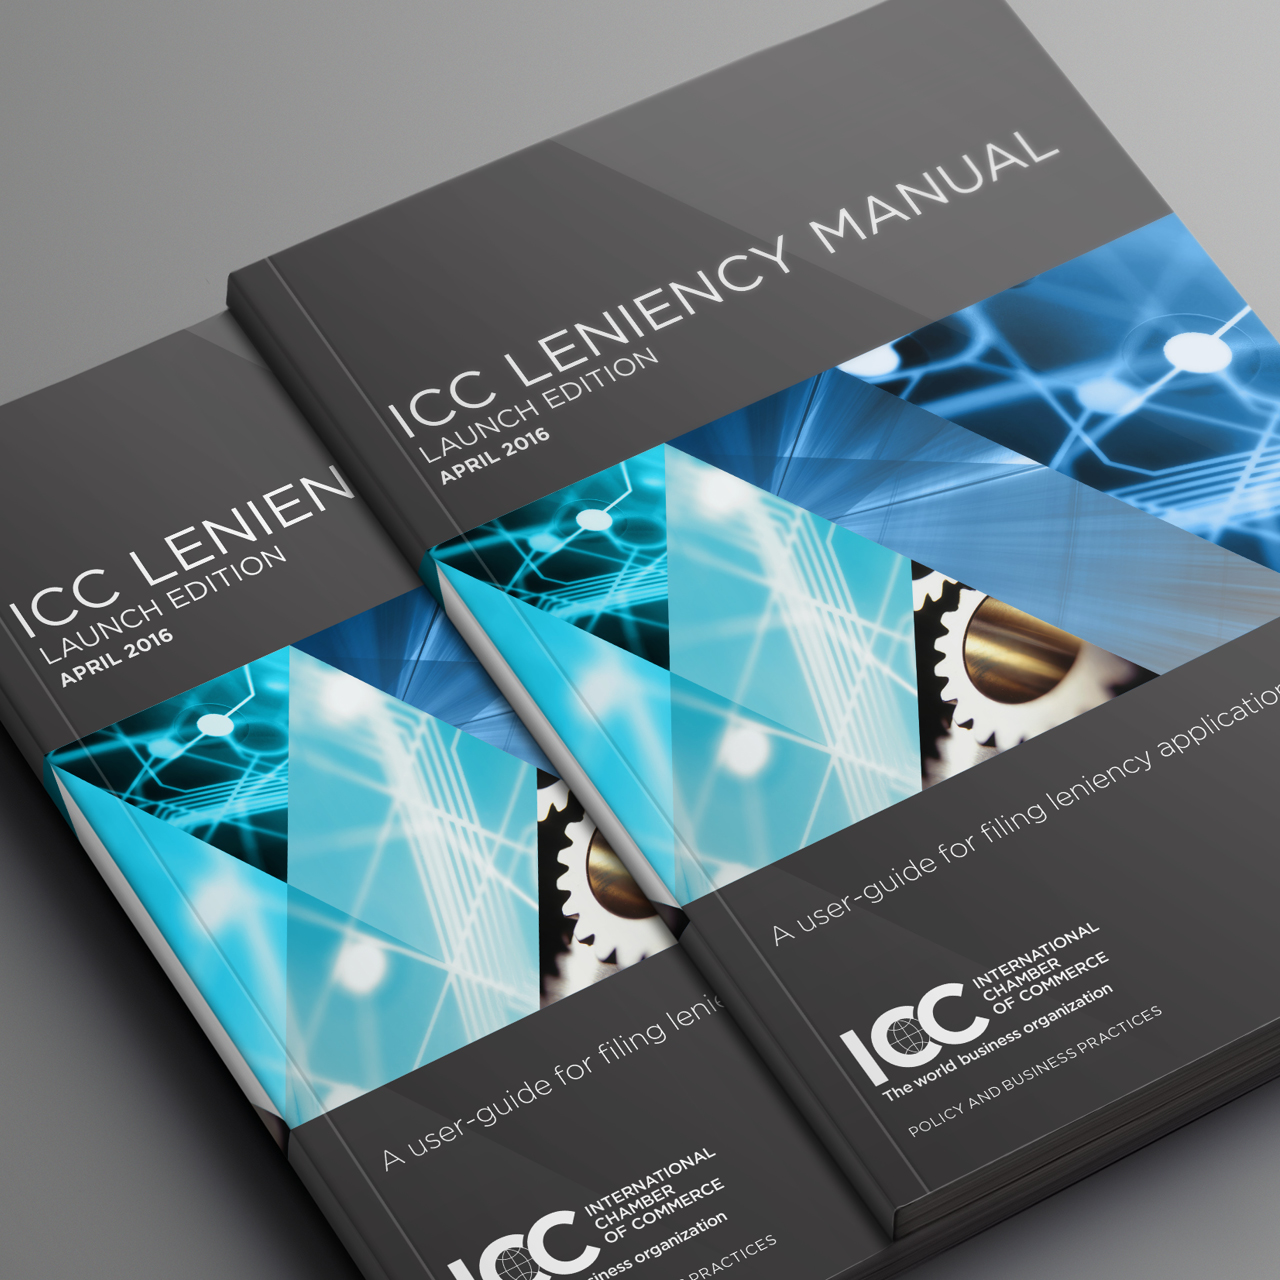 ICC leniency manual brochure infographic